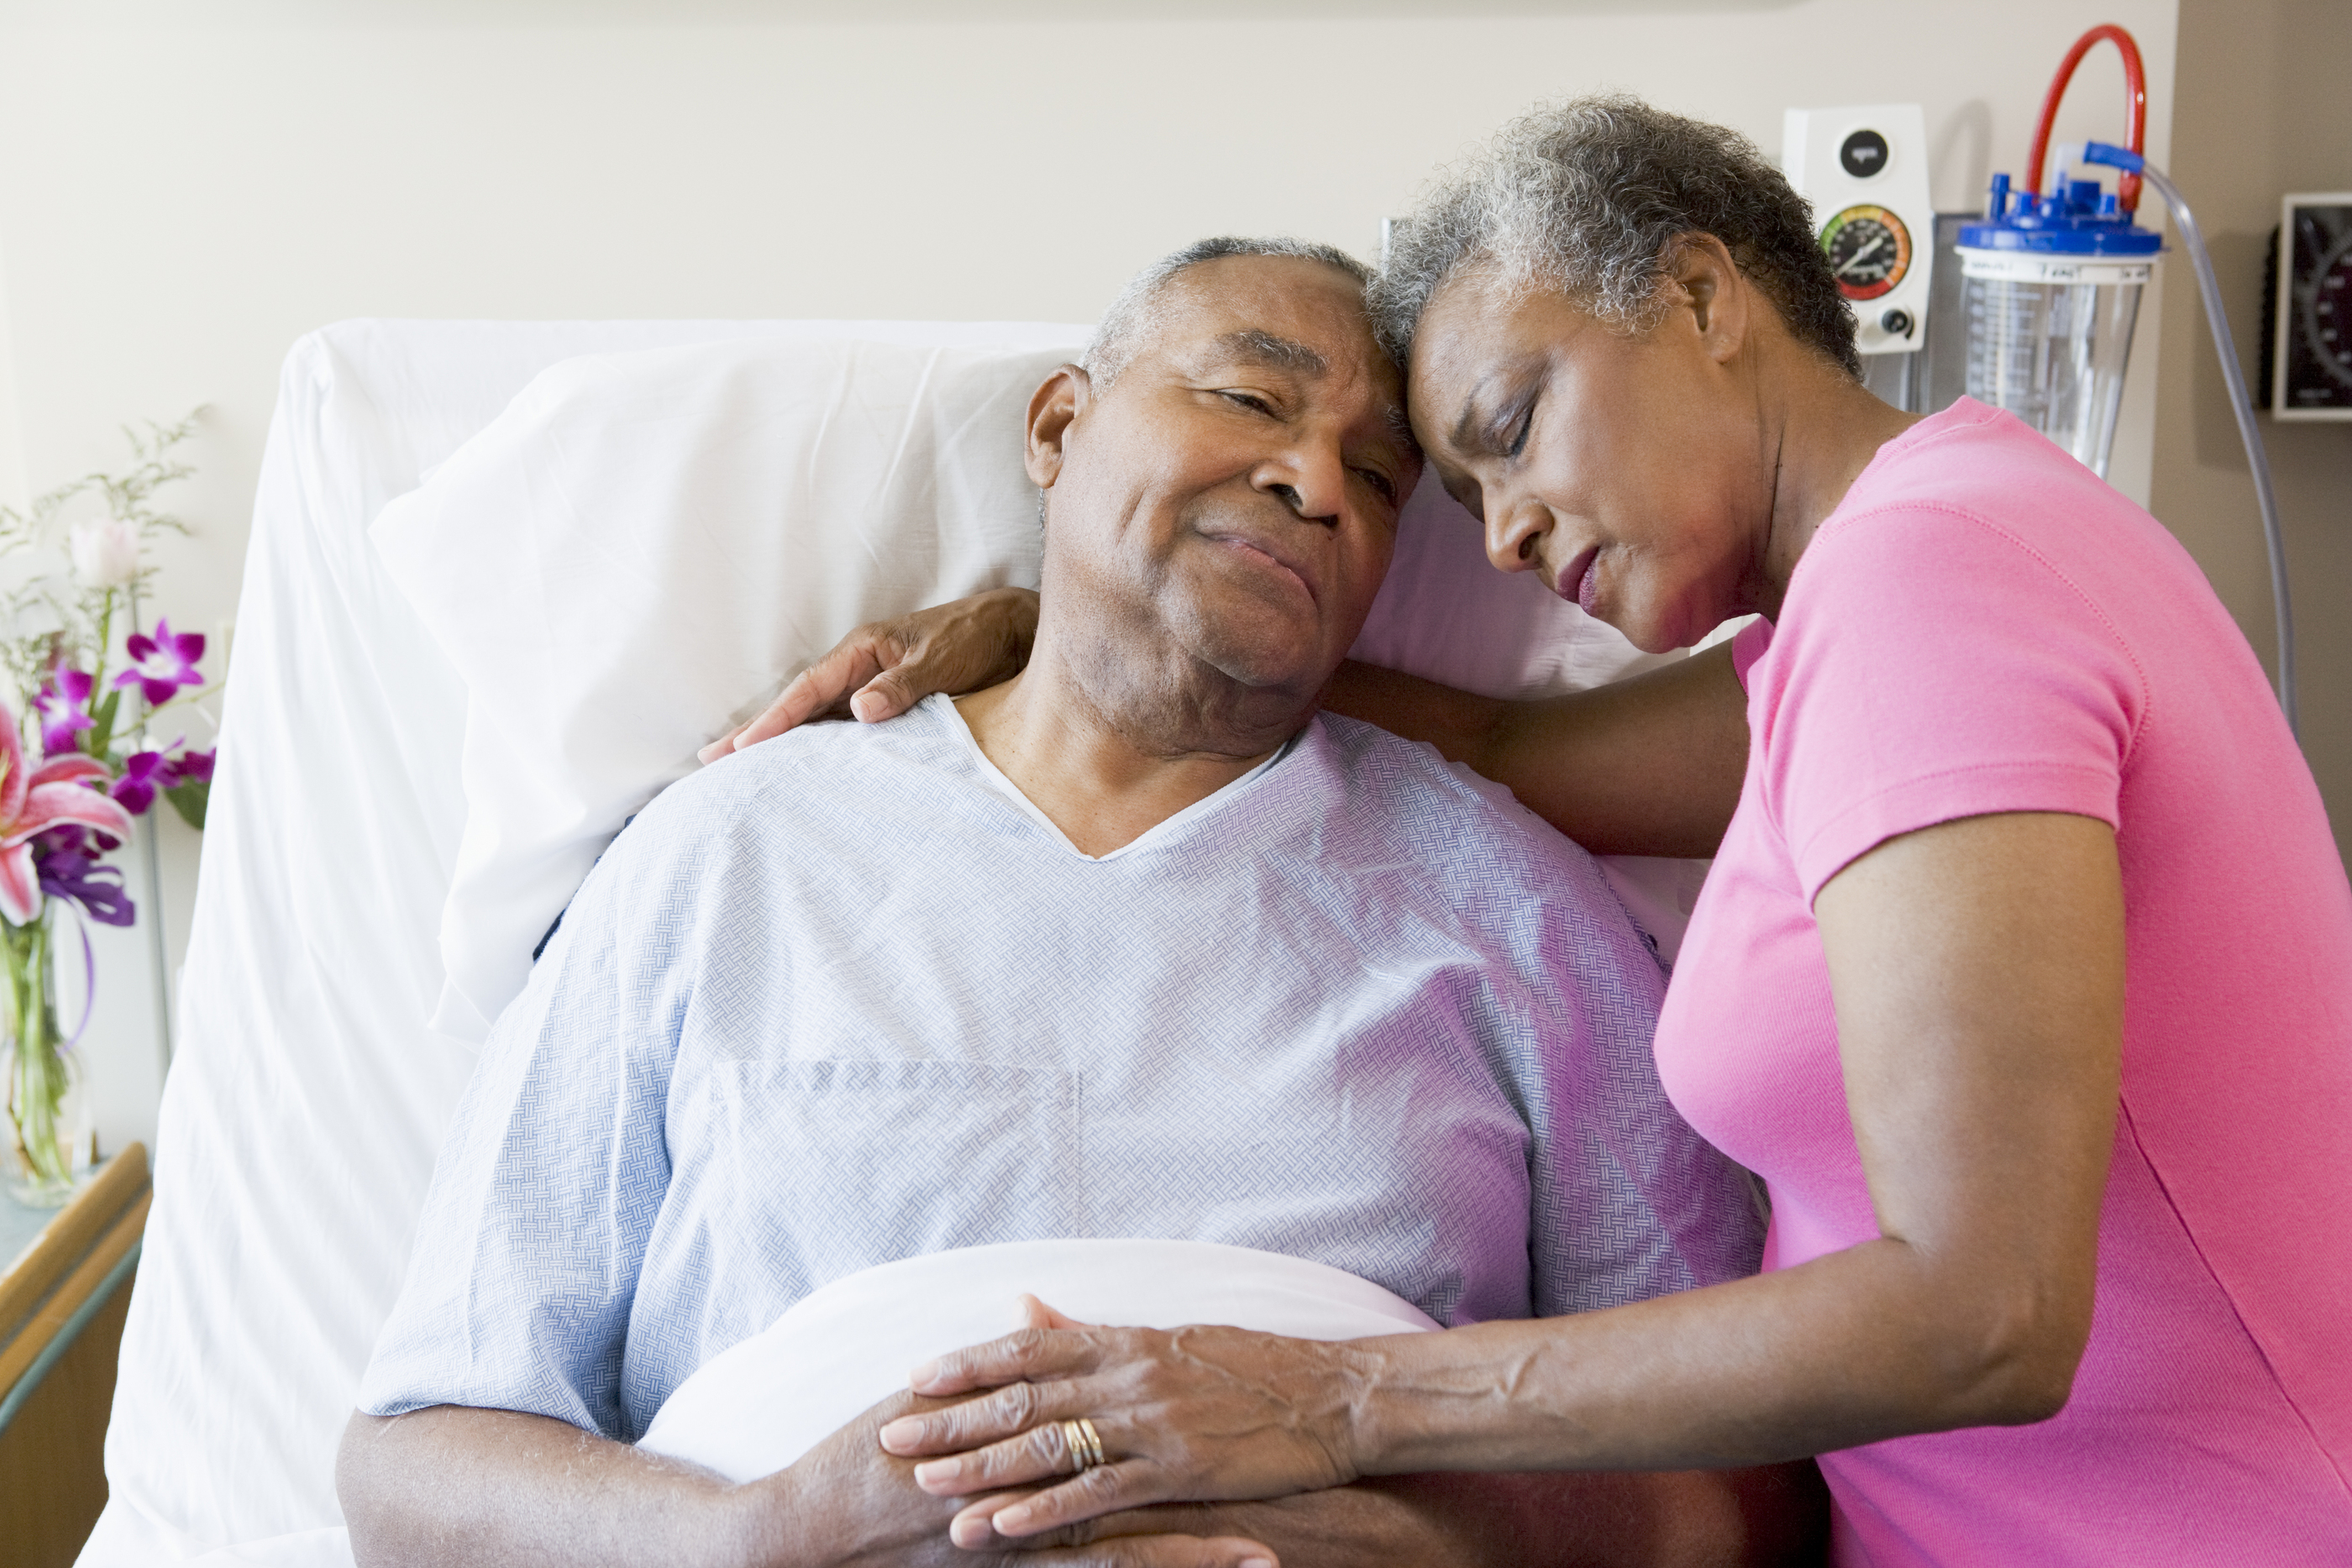 Family Emergencies – 6 Things a Caregiver Should Document